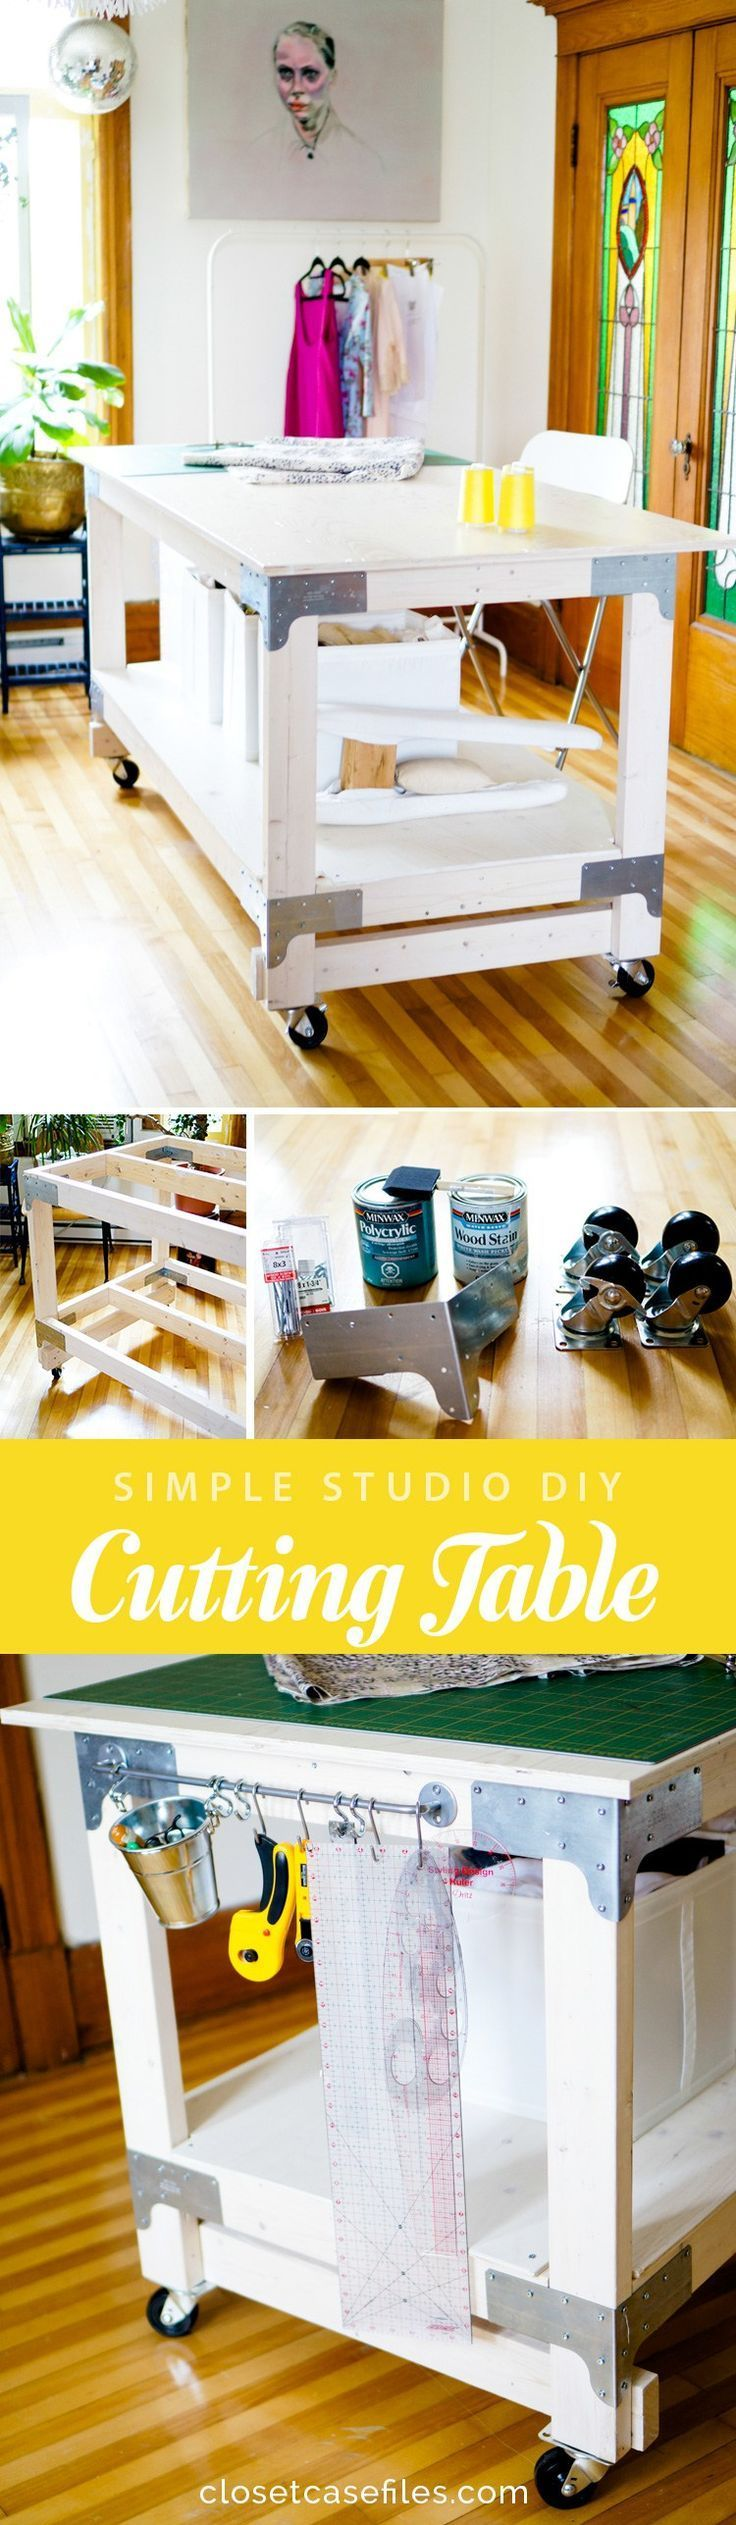 Diy cutting table - Cutting Table Diy